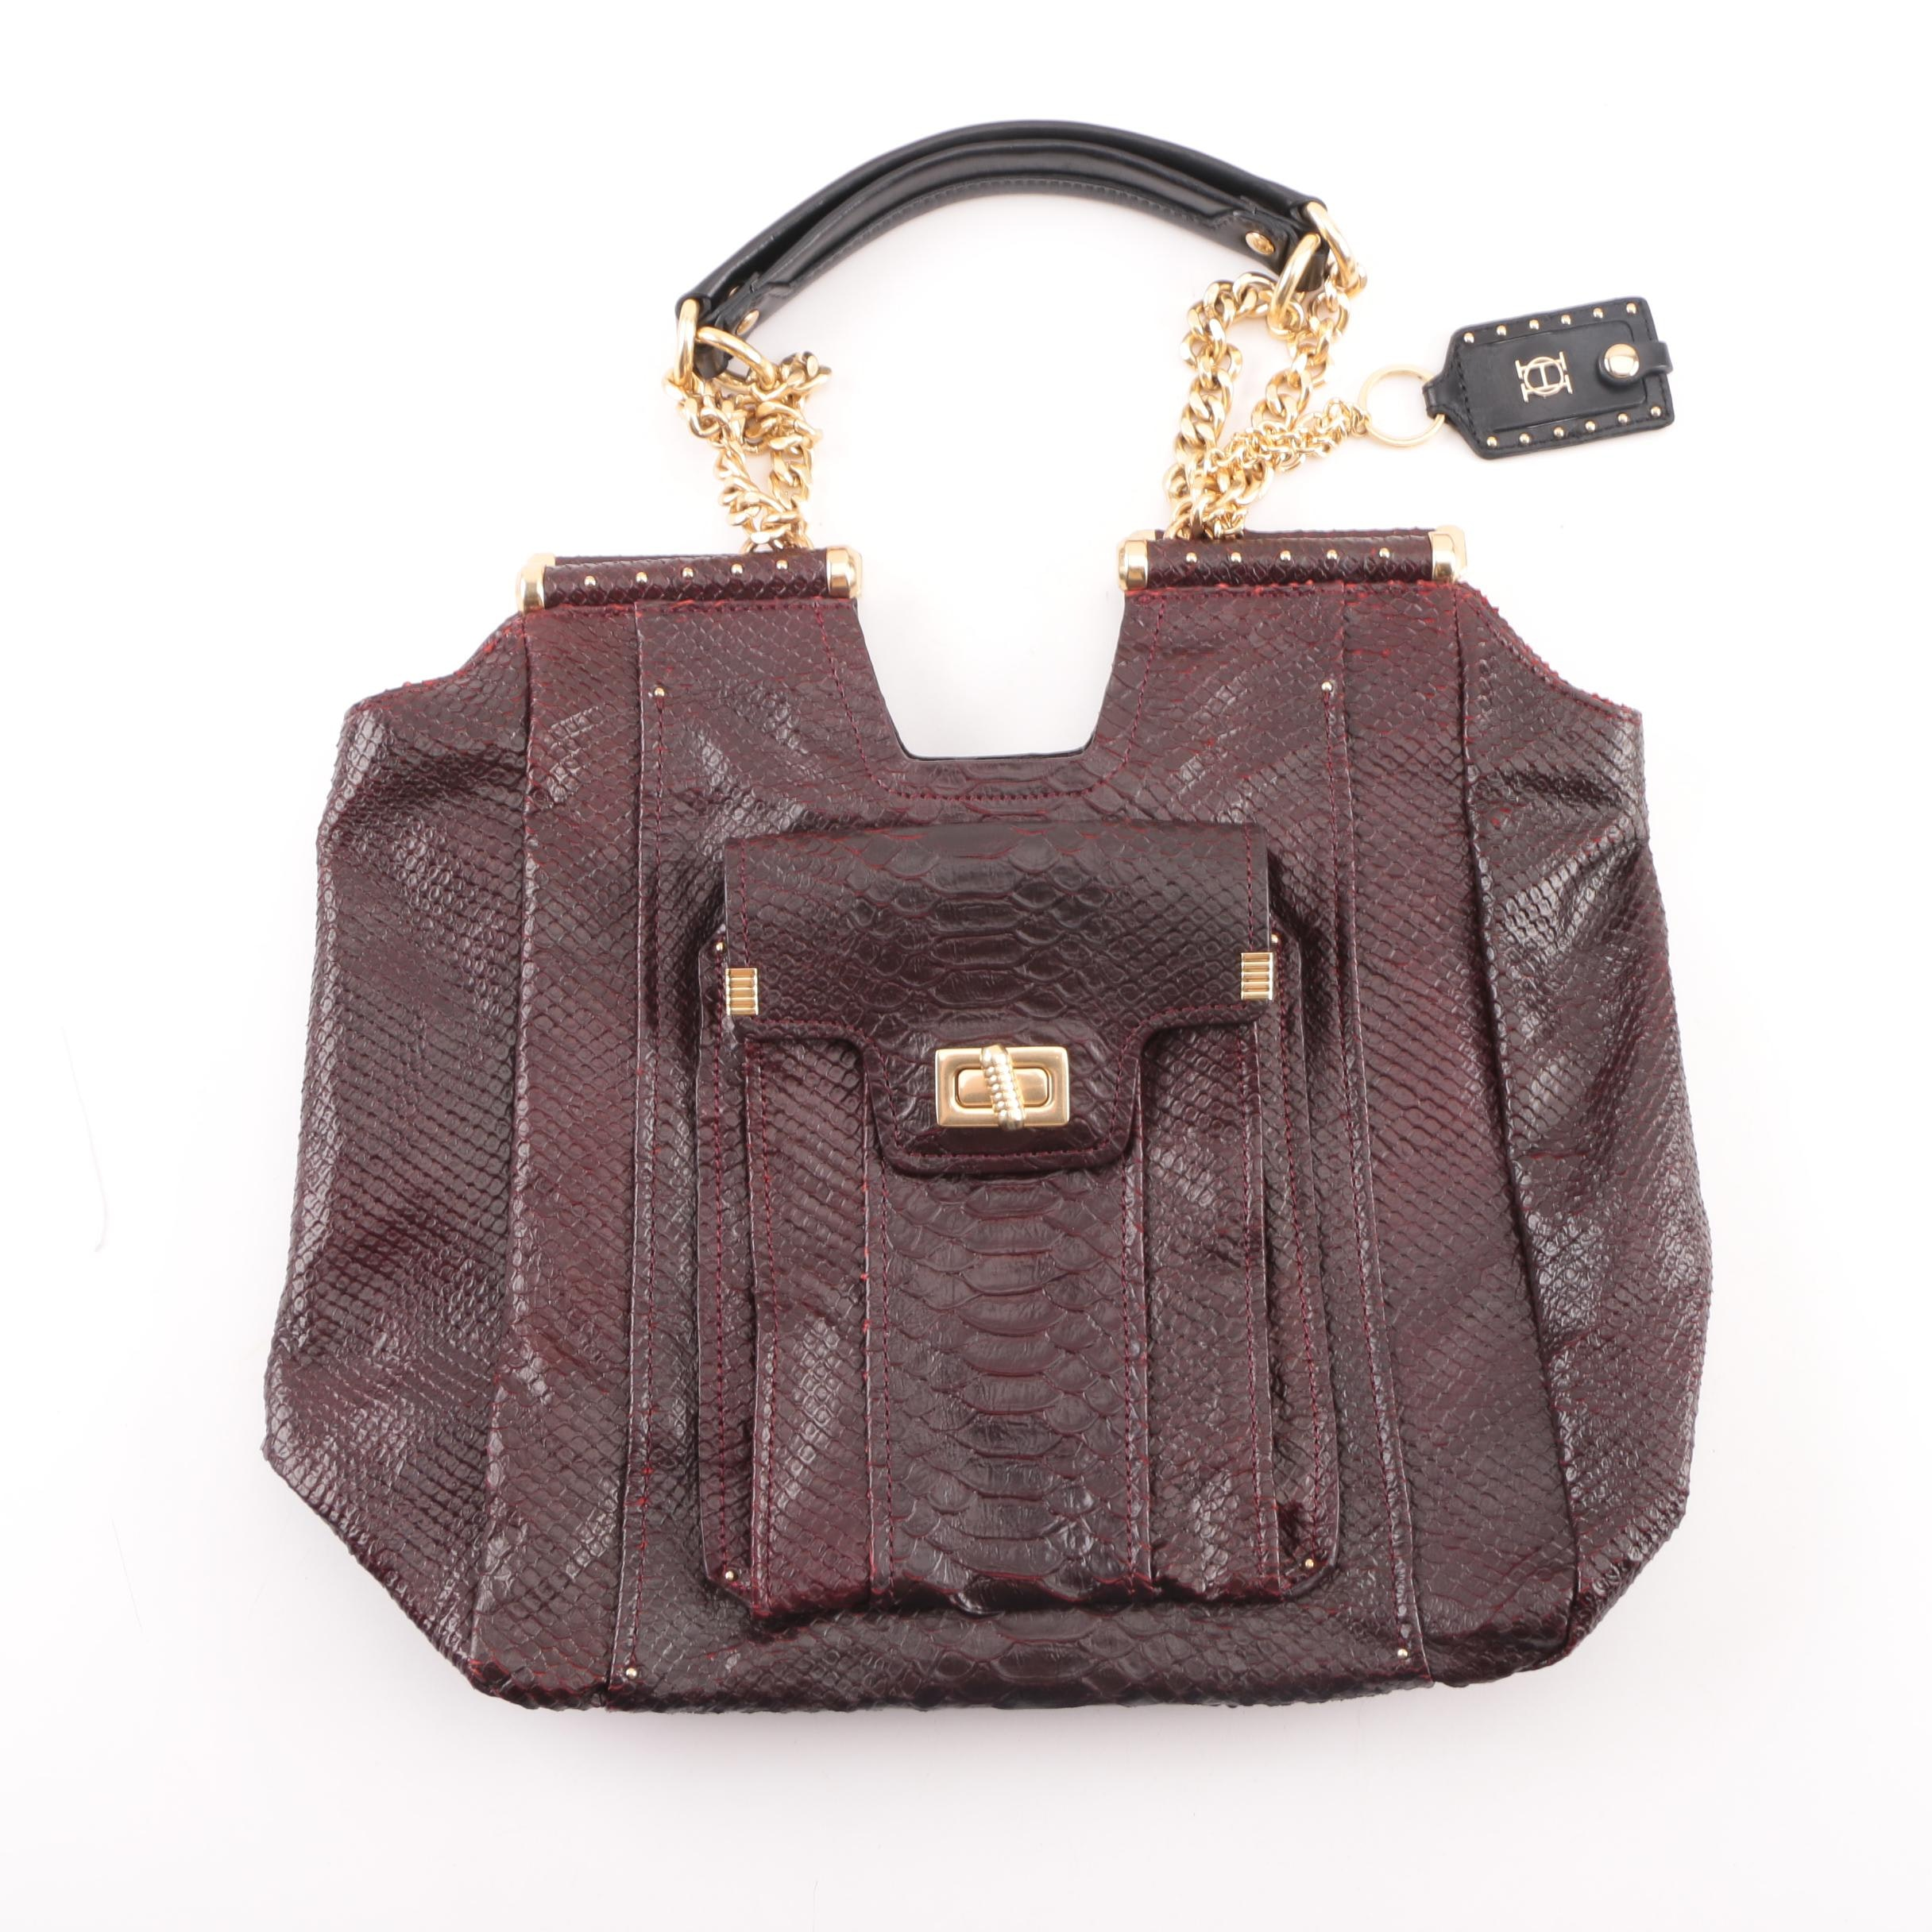 Olivia Harris Burgundy Snakeskin Top Handle Bag